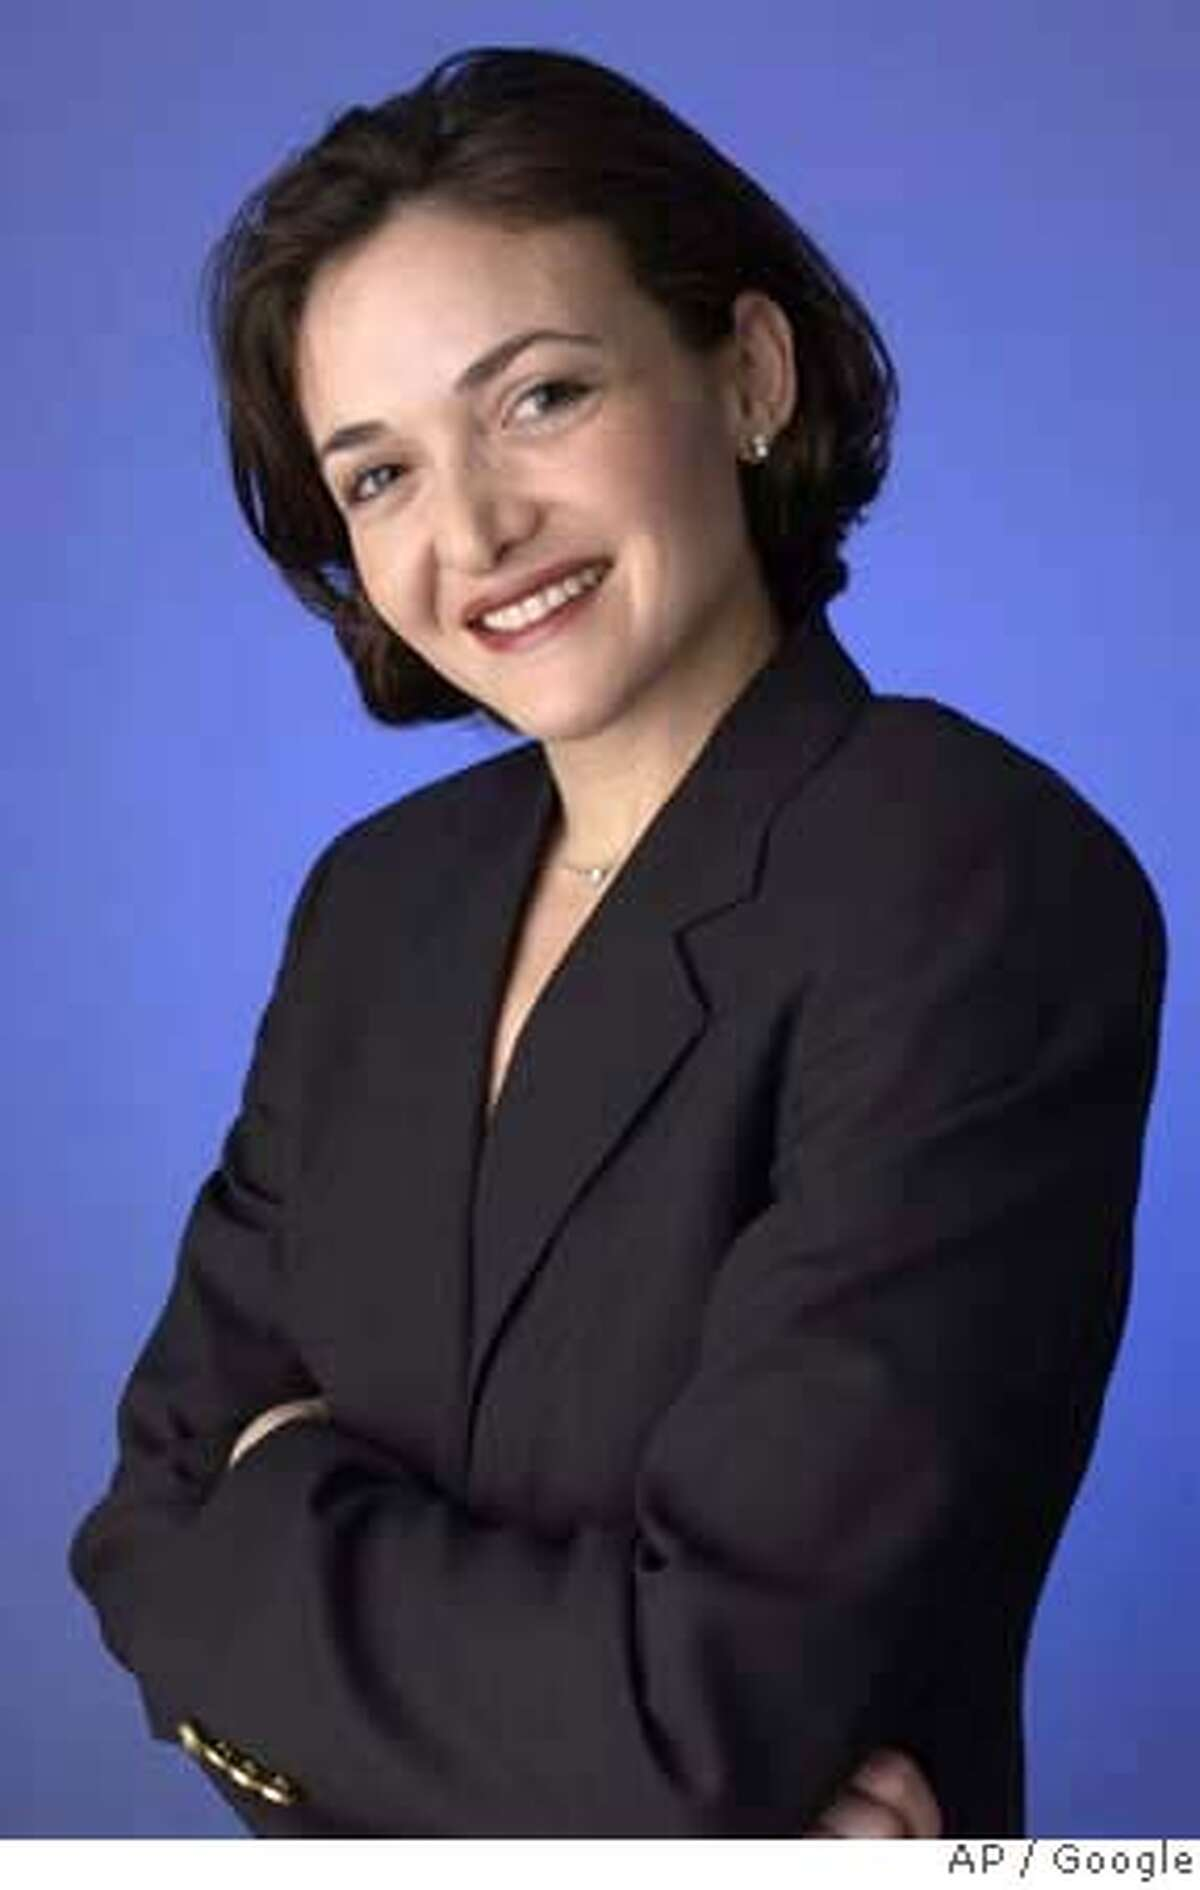 ###Live Caption:This undated photo provided by Google shows former Google executive Sheryl Sandberg. Facebook Inc. has raided Google Inc. to hire a new chief operating officer, providing the popular online social network with more seasoned management and advertising savvy as it strives to make more money without alienating its audience. Sandberg's defection from Google, announced Tuesday March 4, 2008, represents a coup for Facebook just three months after it suffered a humiliating setback in its effort to inject more commercialism into its Web site. (AP Photo/Google) ** NO SALES **###Caption History:This undated photo provided by Google shows former Google executive Sheryl Sandberg. Facebook Inc. has raided Google Inc. to hire a new chief operating officer, providing the popular online social network with more seasoned management and advertising savvy as it strives to make more money without alienating its audience. Sandberg's defection from Google, announced Tuesday March 4, 2008, represents a coup for Facebook just three months after it suffered a humiliating setback in its effort to inject more commercialism into its Web site. (AP Photo/Google) ** NO SALES **###Notes:Sheryl Sandberg###Special Instructions:UNDATED PHOTO PROVIDED BY GOOGLE. NO SALES AP provides access to this publicly distributed HANDOUT photo to be used only to illustrate news reporting or commentary on the facts or events depicted in this image.